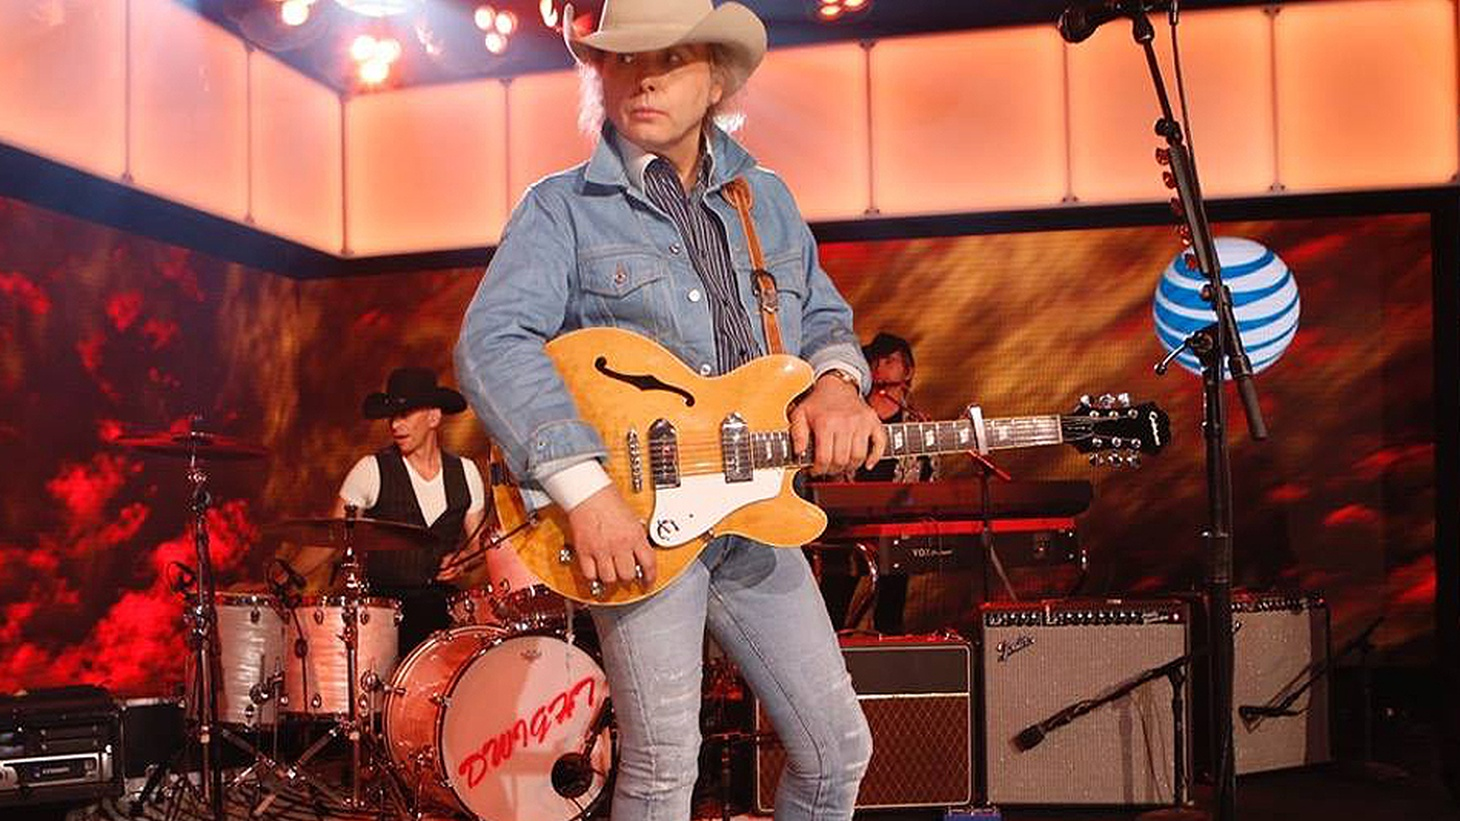 Grammy award-winning songwriter Dwight Yoakam has sold more than 25 million records. He's kept his sound fresh by embracing a wider range of sounds on recent recordings, including his latest, Second Hand Heart.